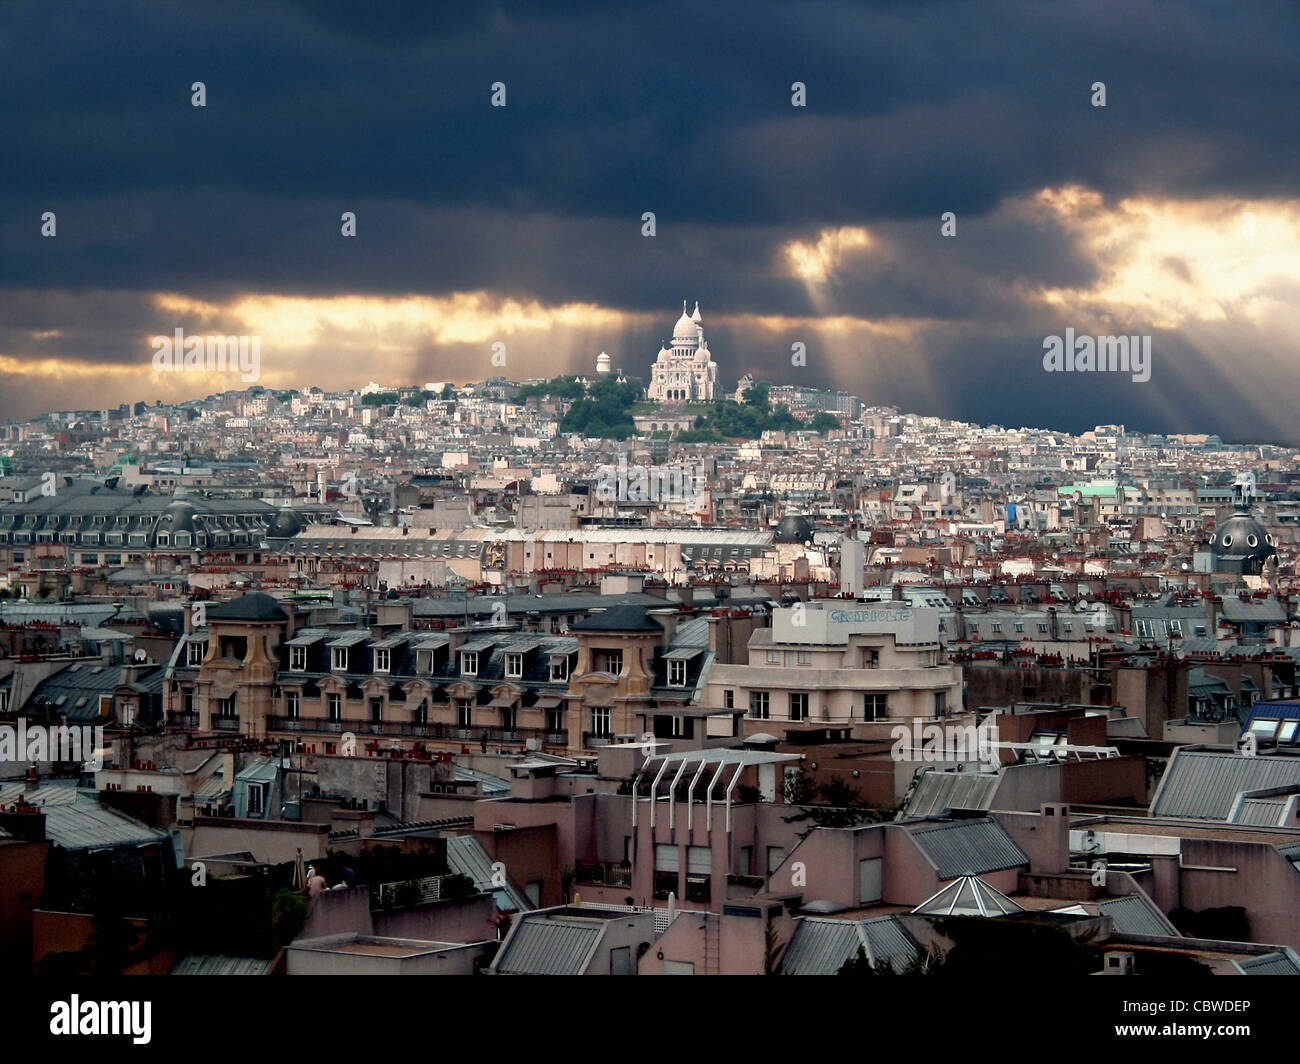 Paris, France, Europe - in the evening light with storm clouds - Stock Image